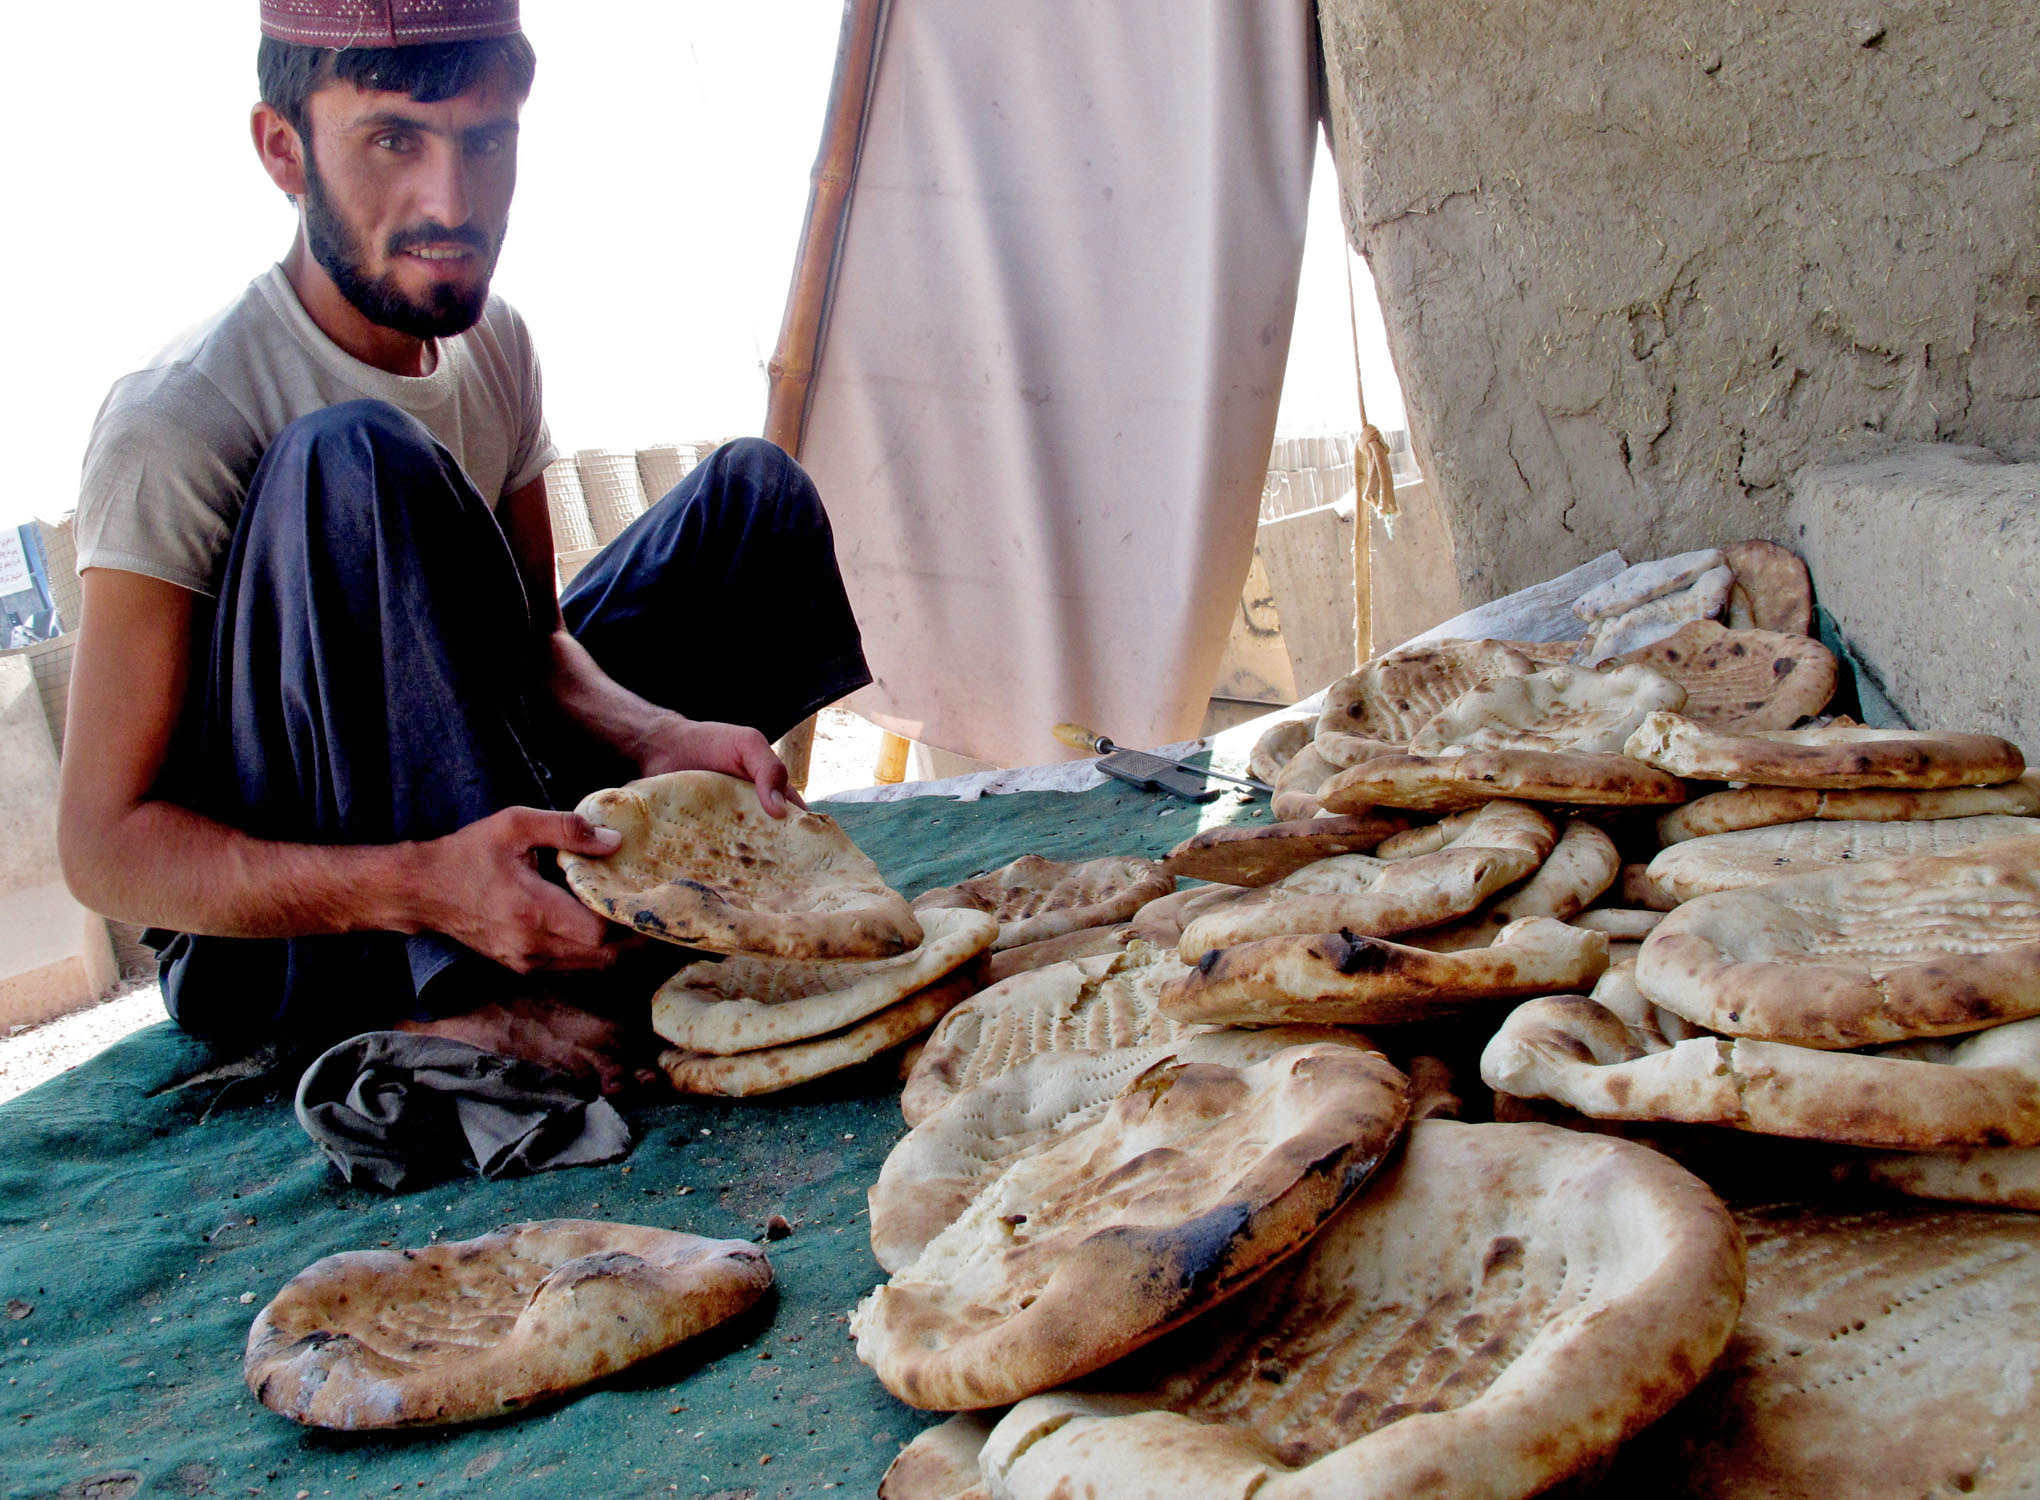 A baker sorts out freshly baked traditional Afghan naan bread in Arghandab Valley, southern Afghanistan